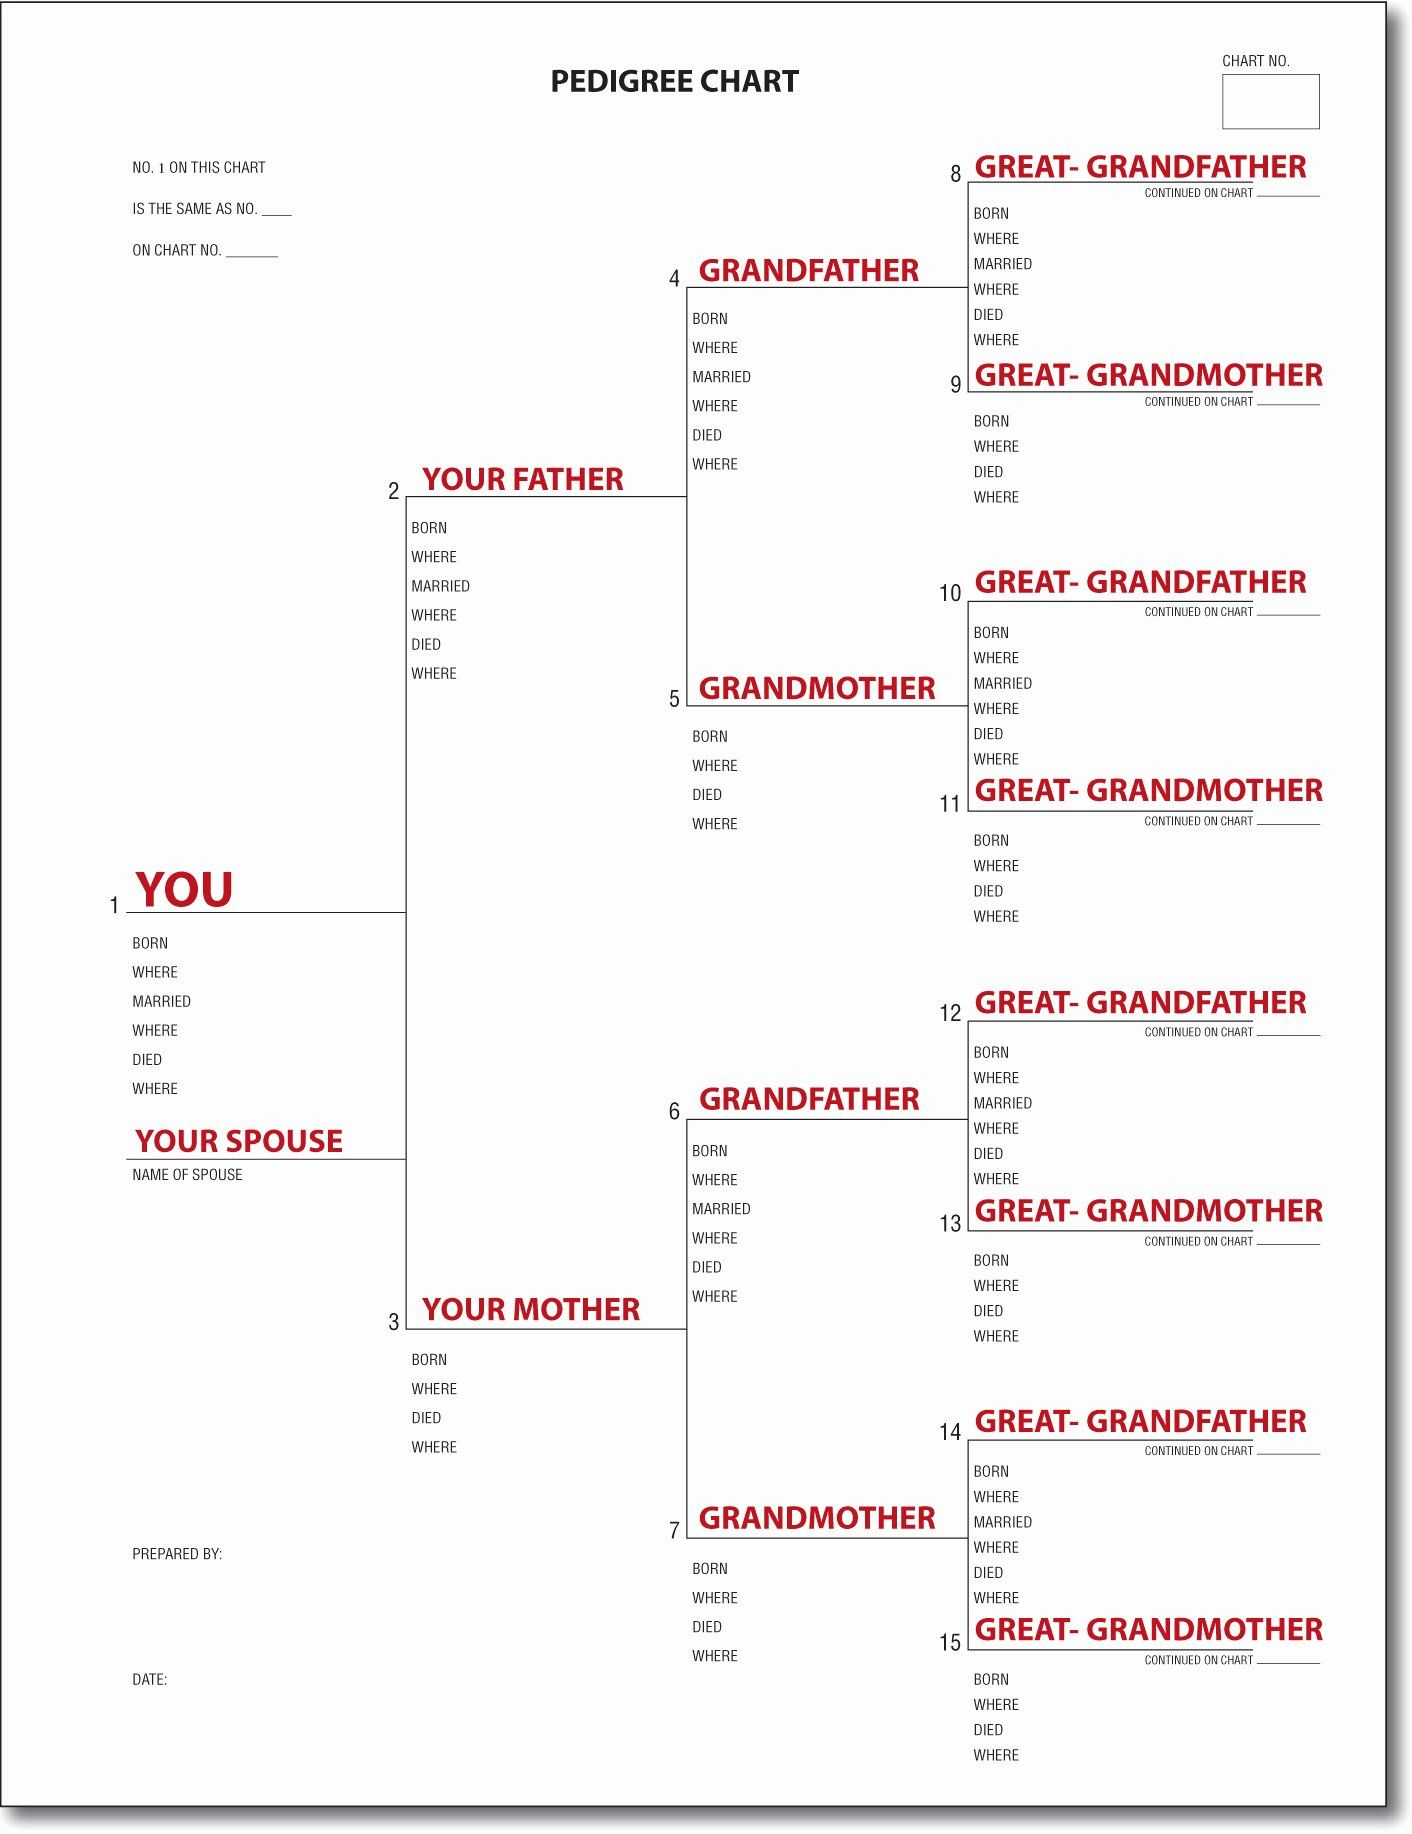 Example Of Family Tree Chart New A Pedigree Chart In